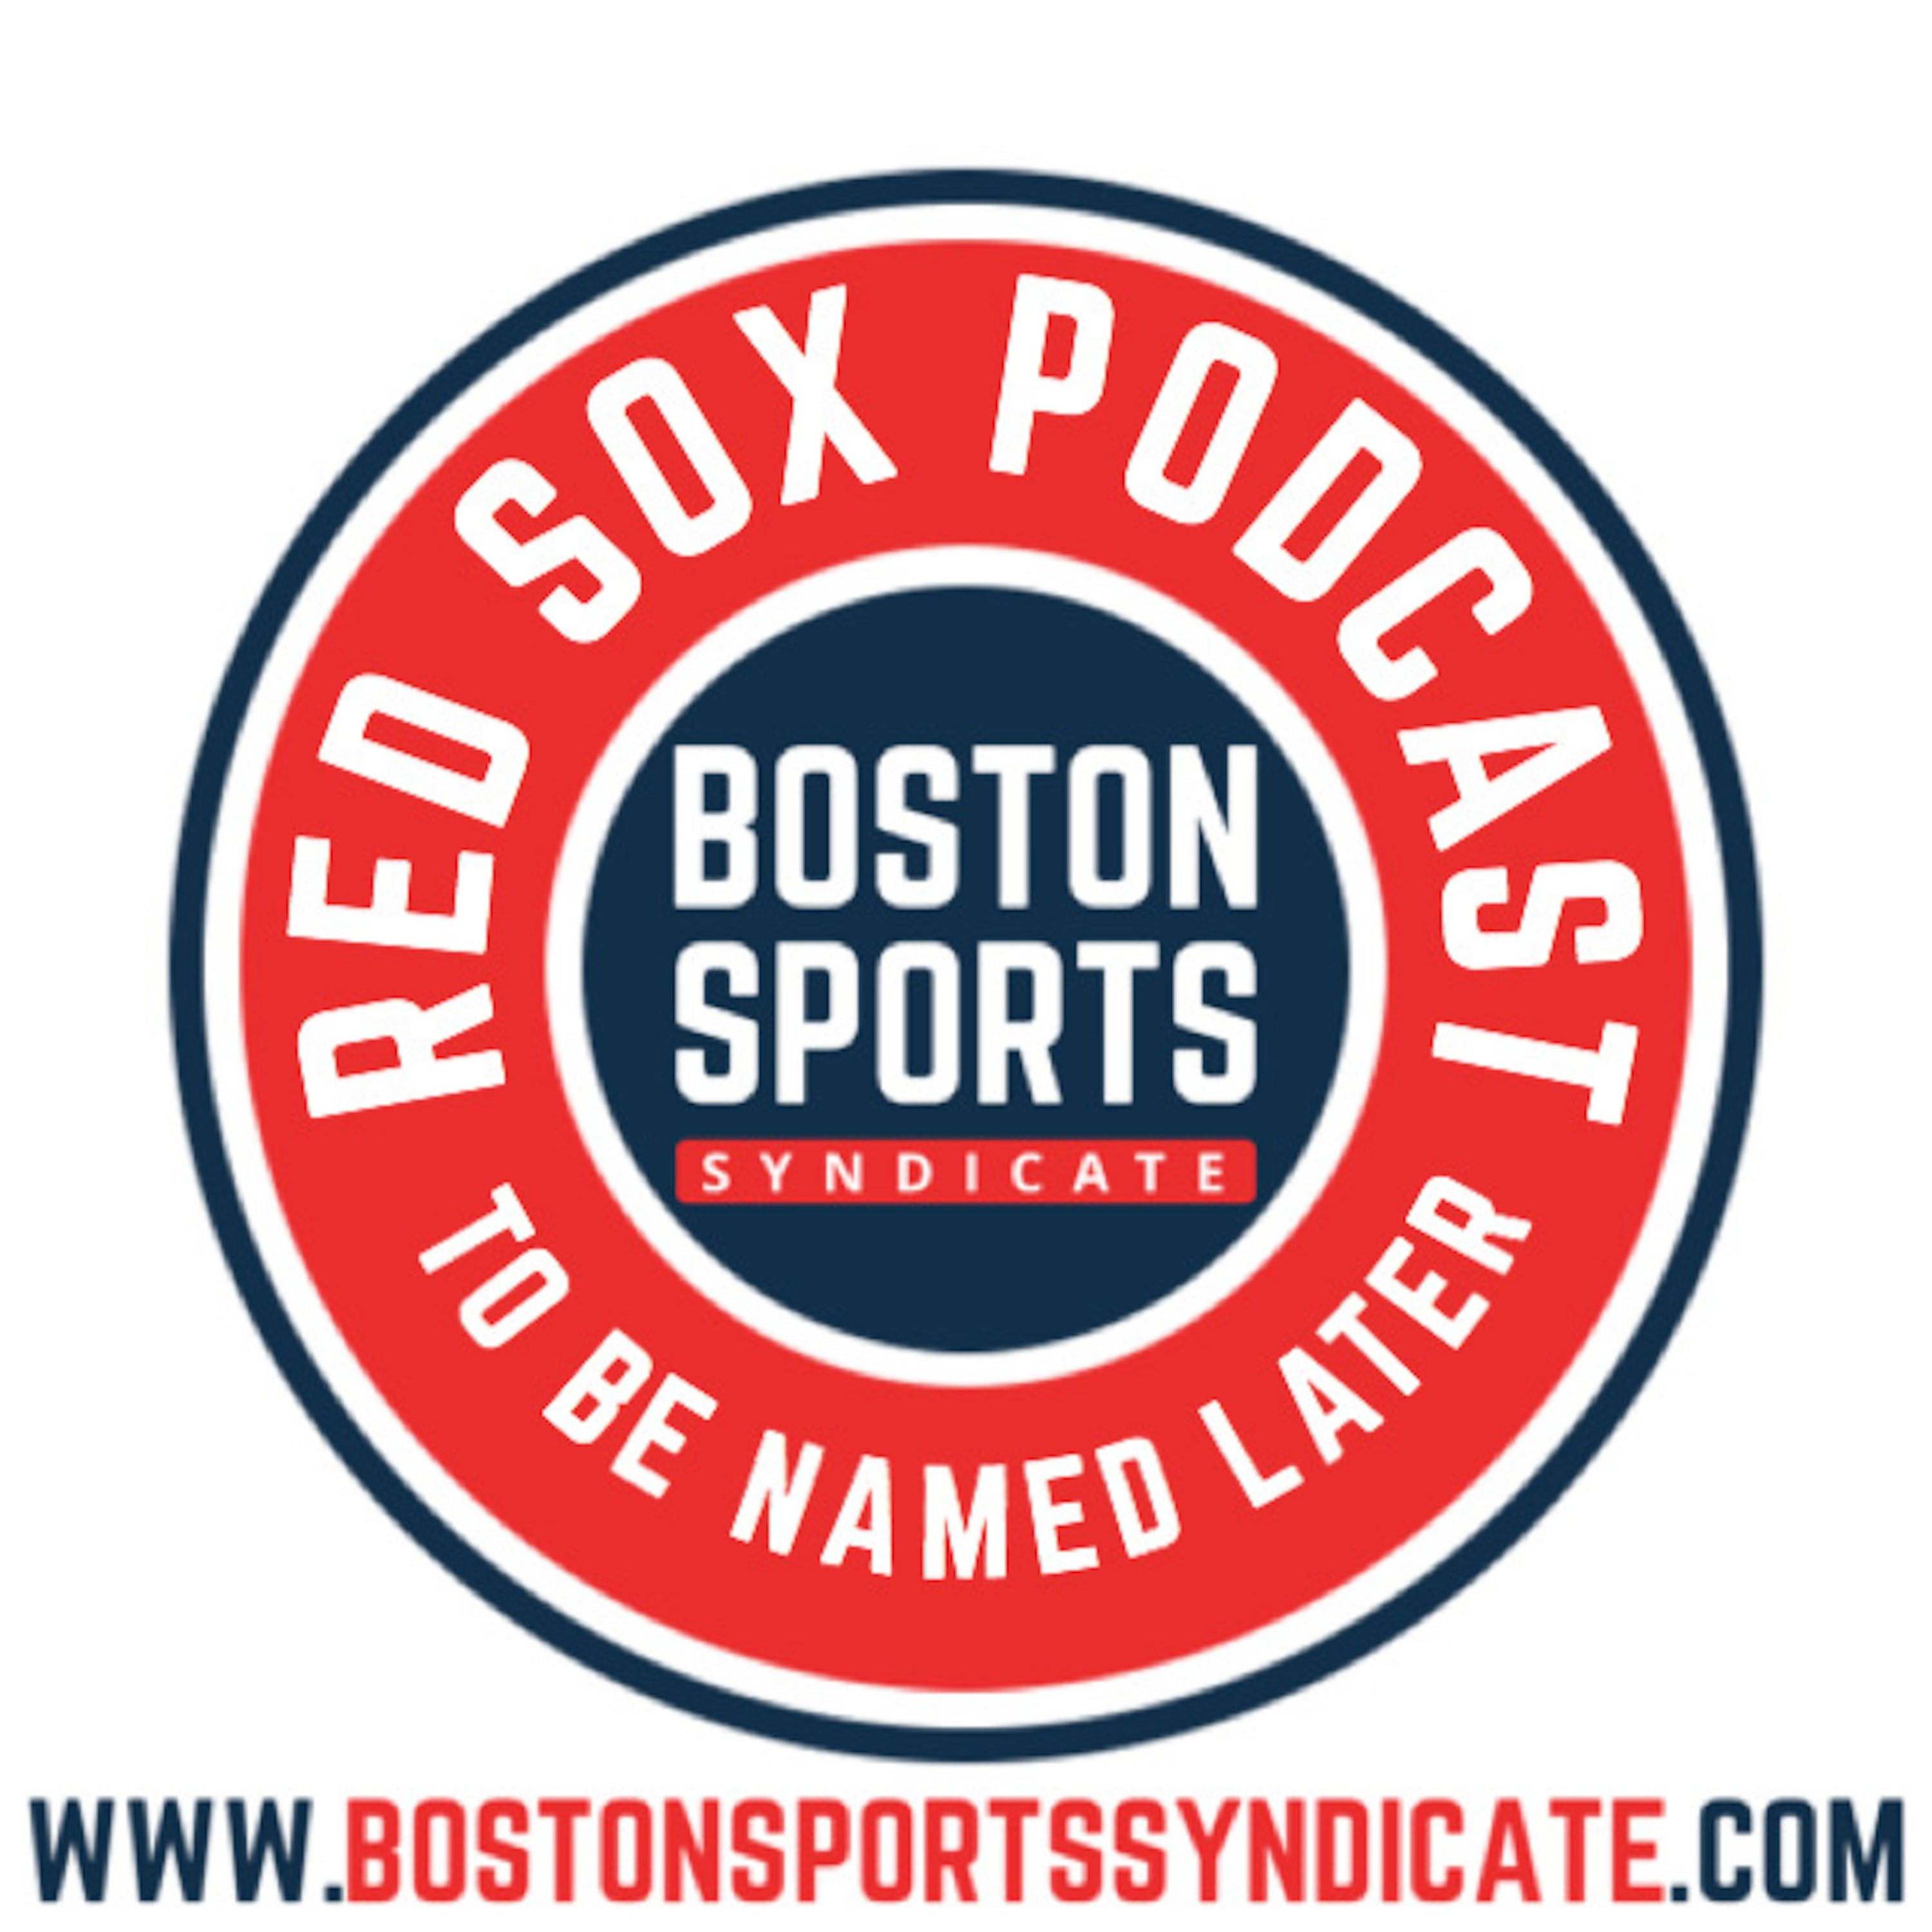 Episode 110: RSPTBNL - Opening Day Is Here!